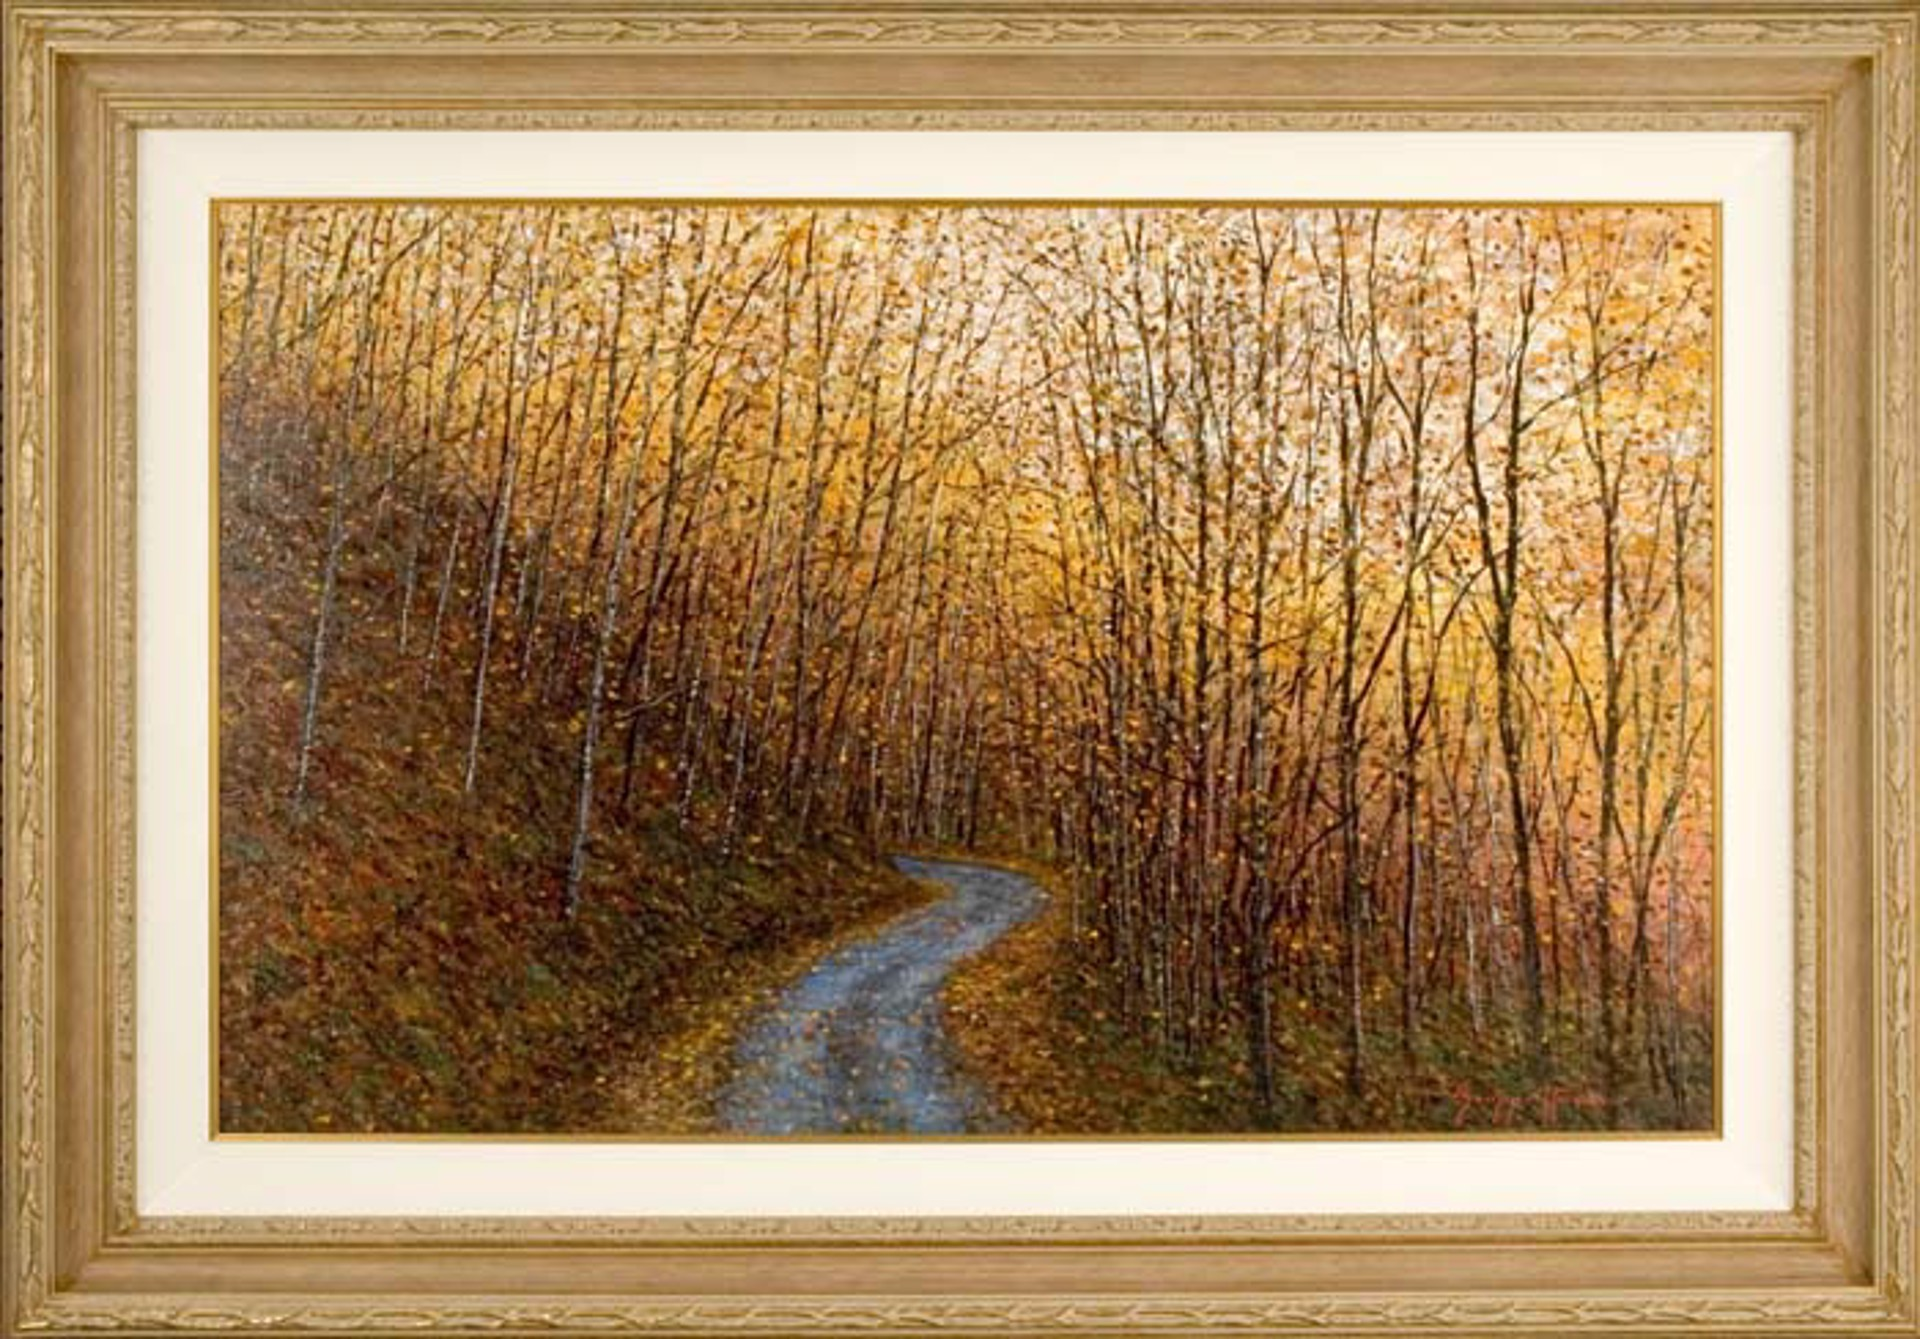 Late Afternoon Autumn by James Scoppettone